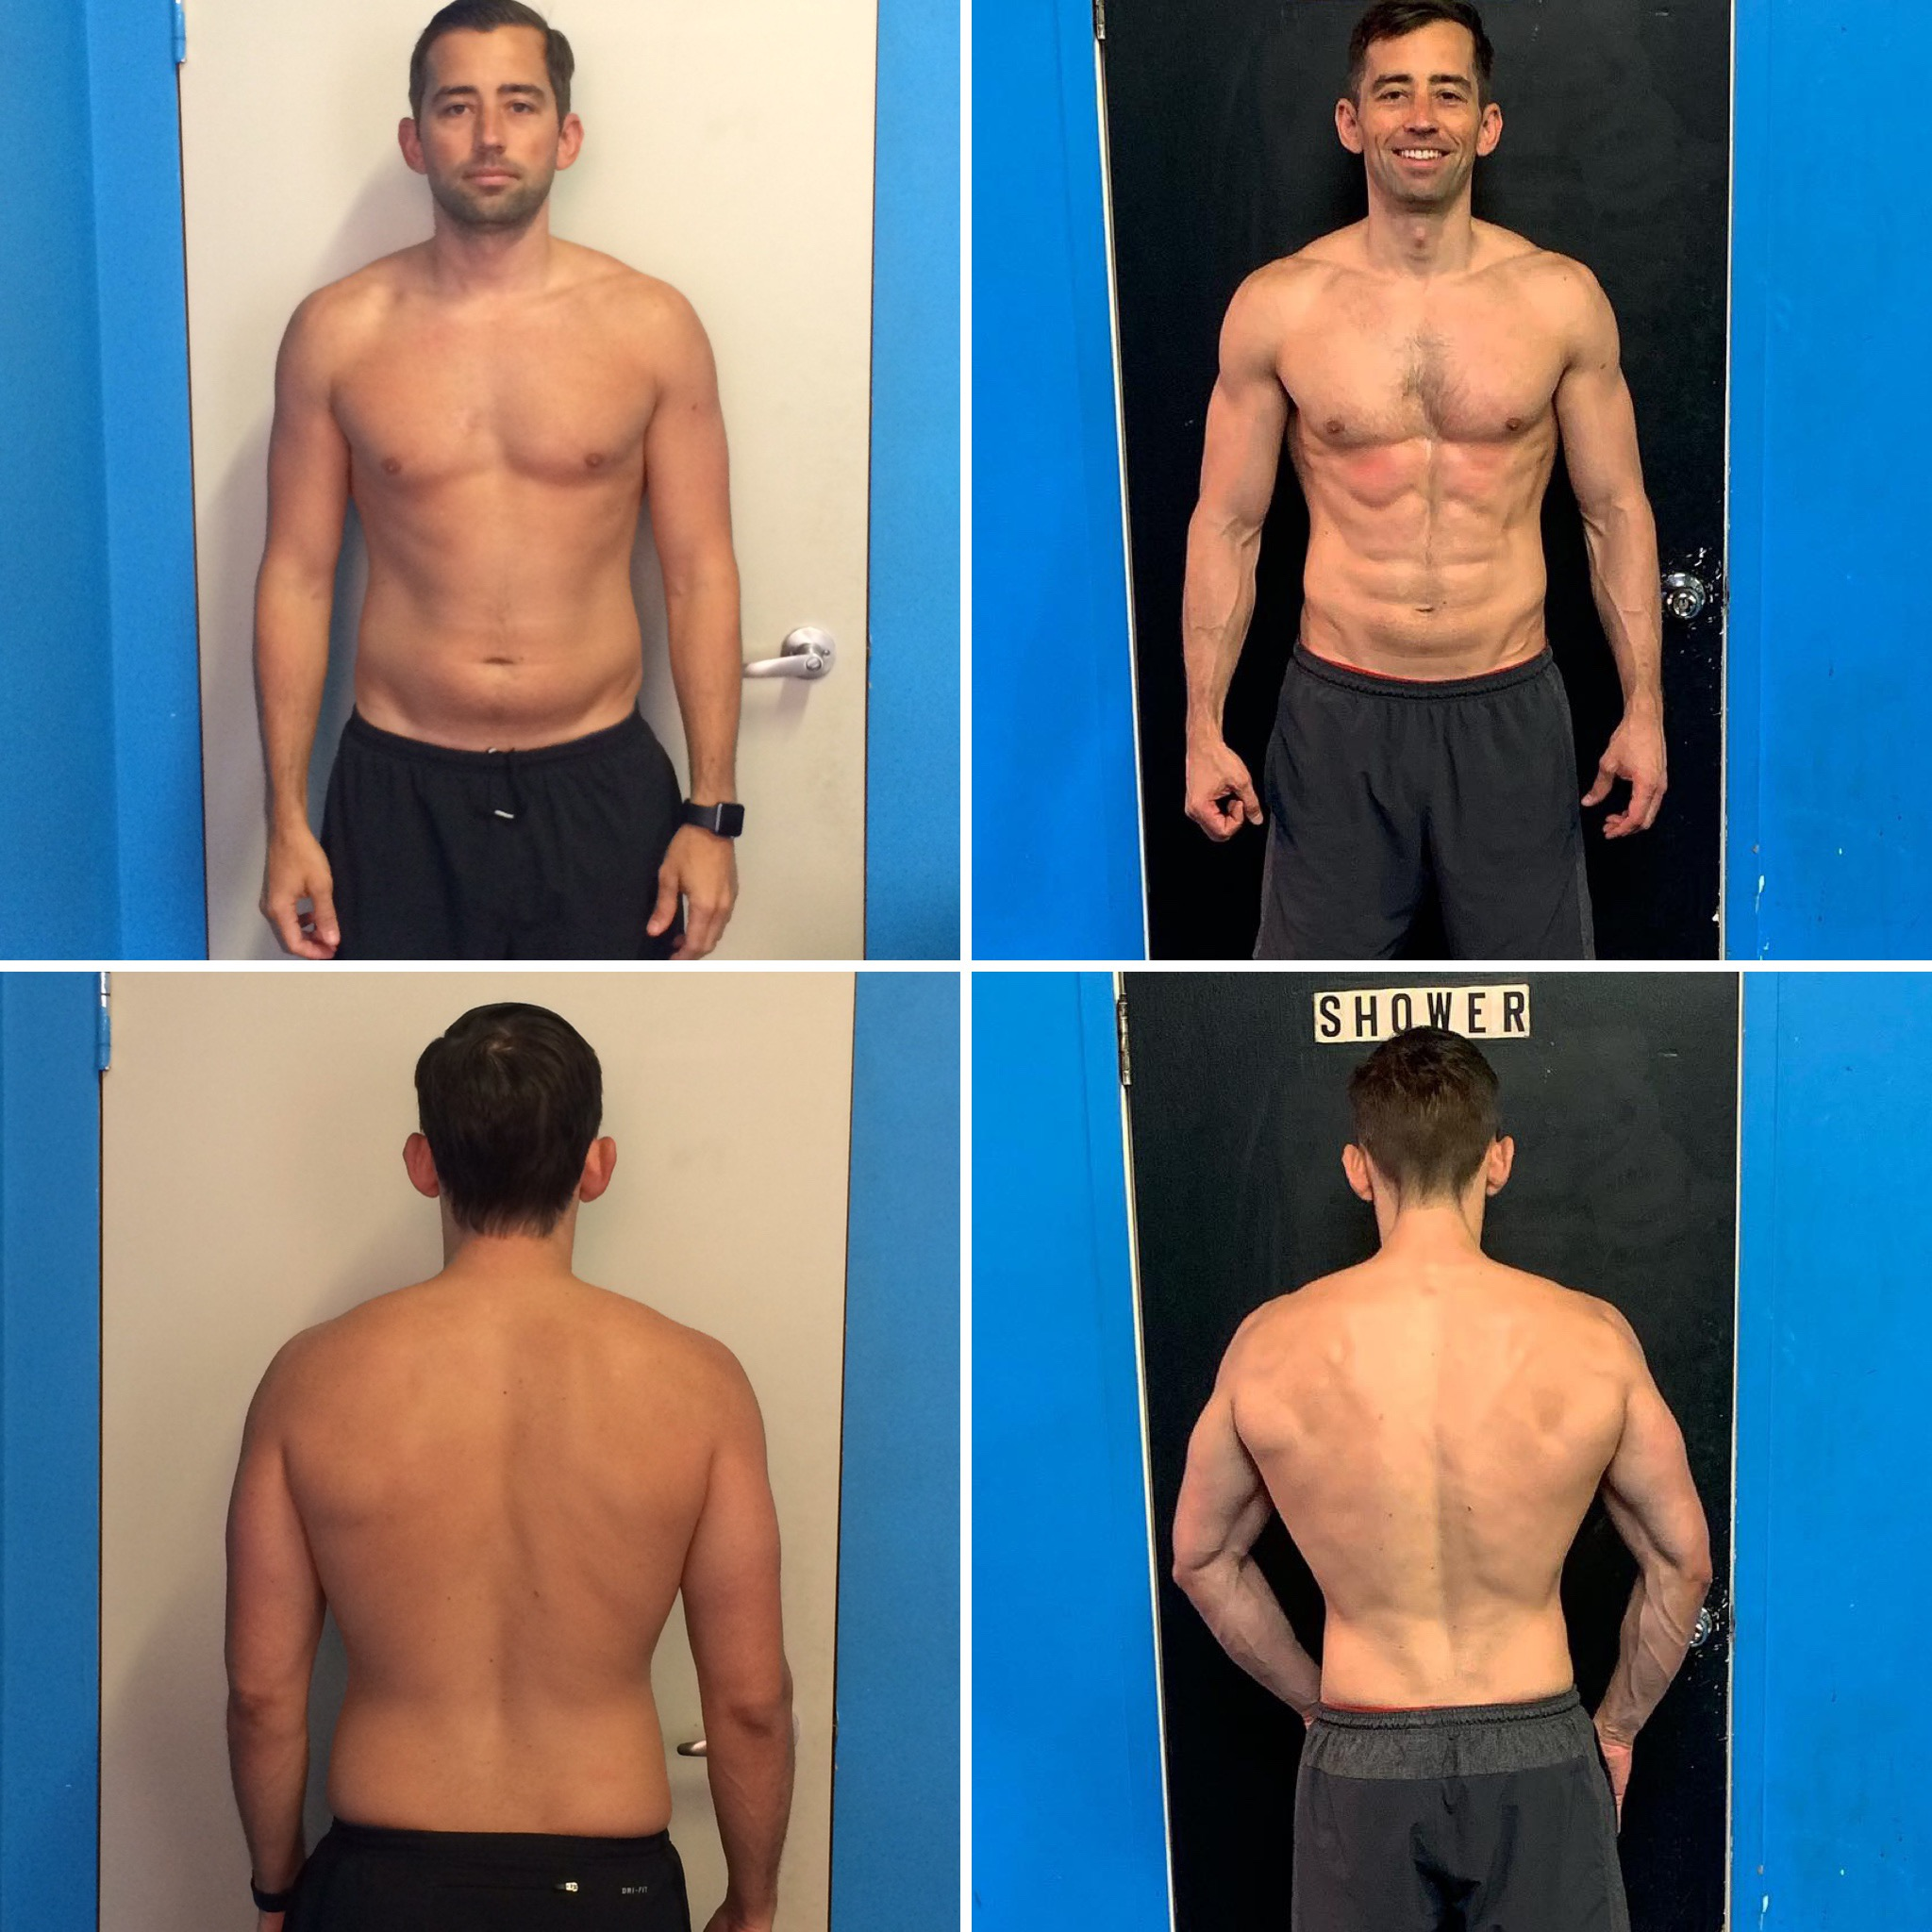 Eric has achieved phenomenal results despite travelling for over 1/3 of the year